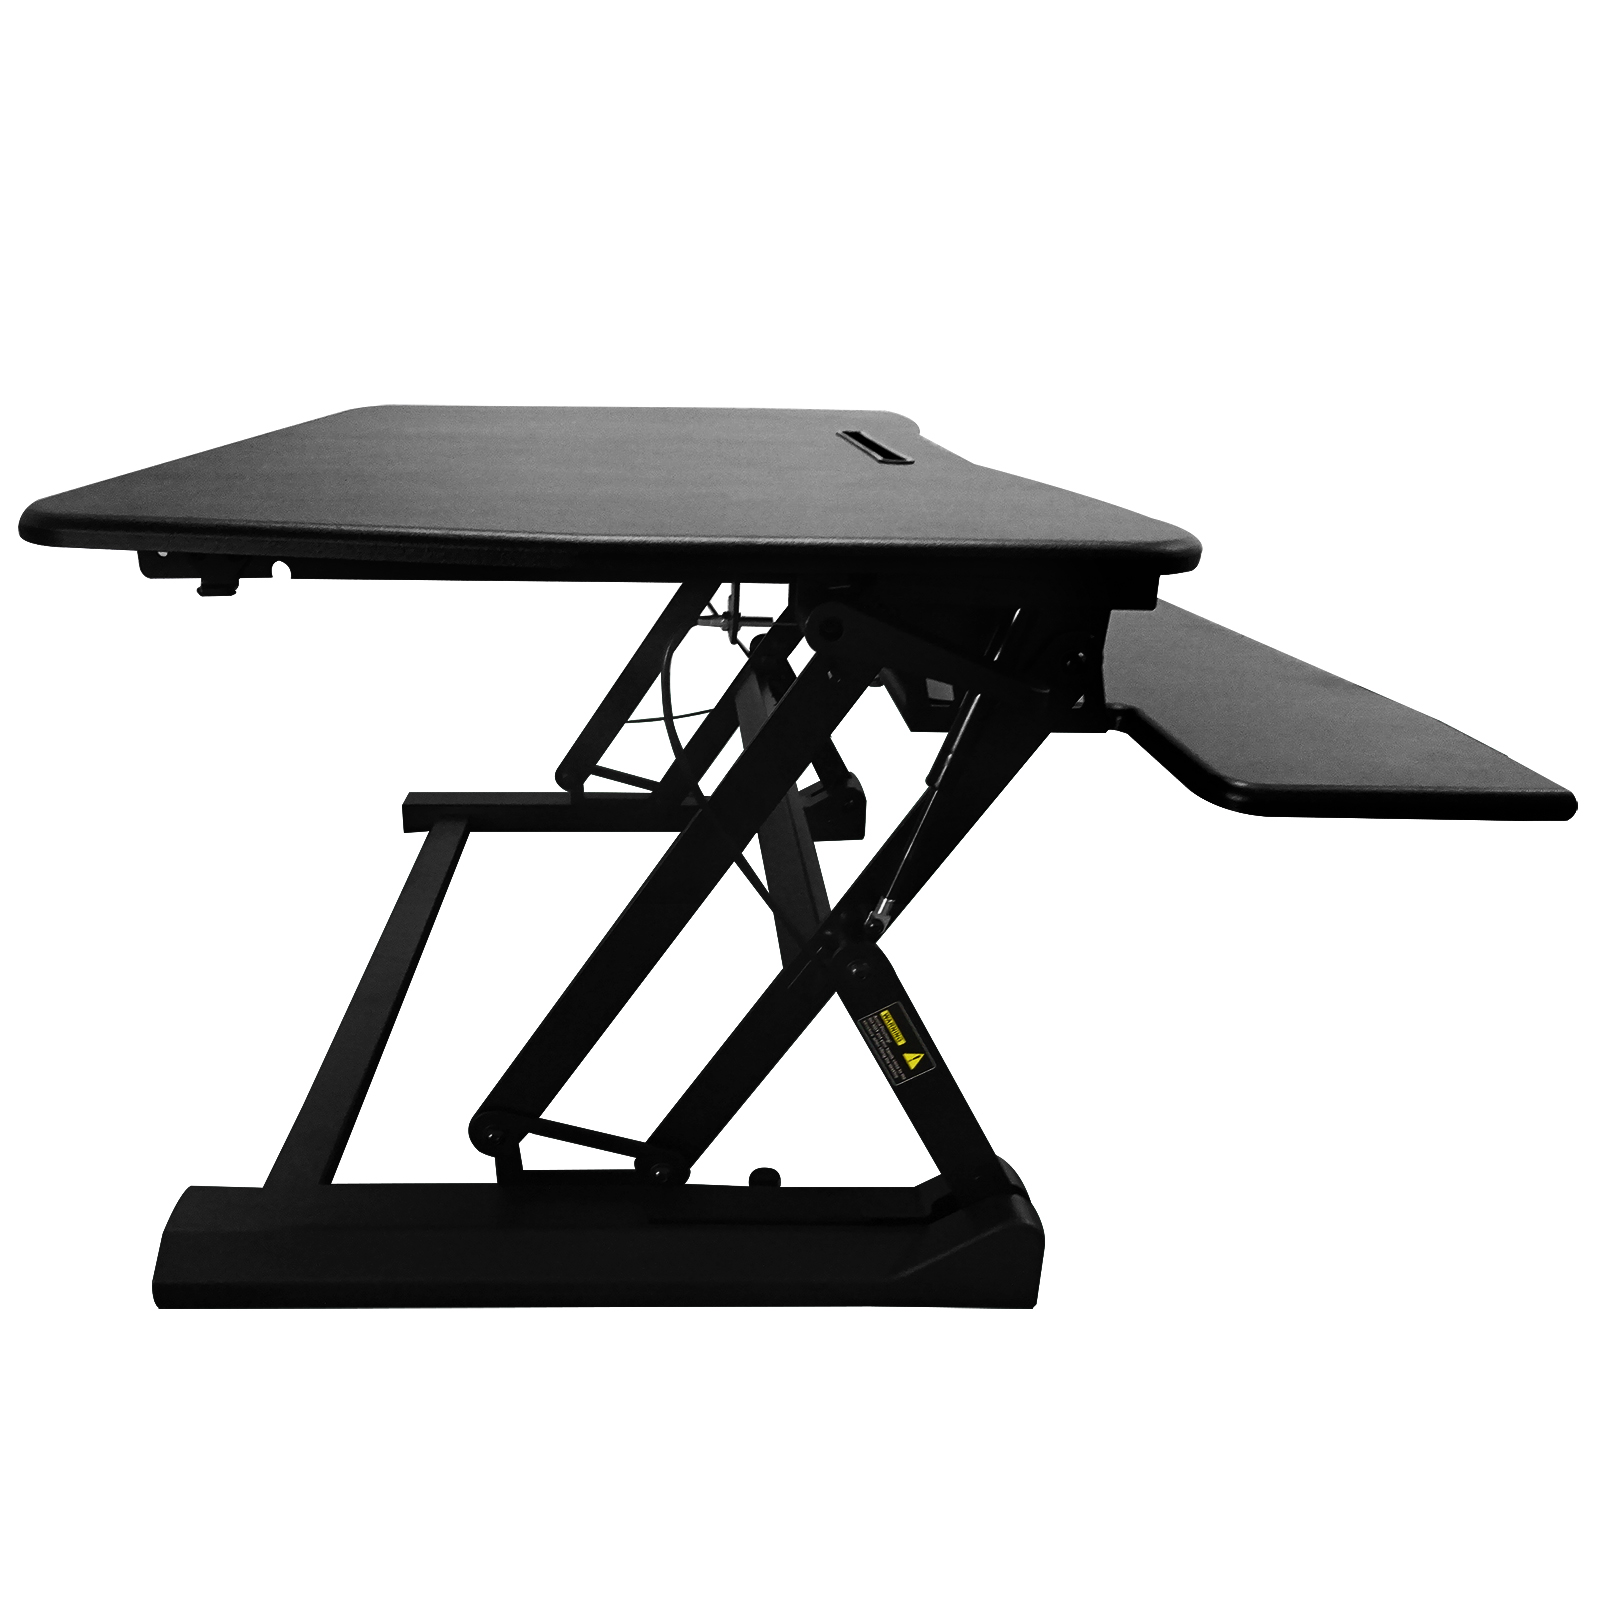 90x59CM Adjustable Height Stand Up Desk TV Stand Computer Office Laptop Workstation Holder black white MAYITR